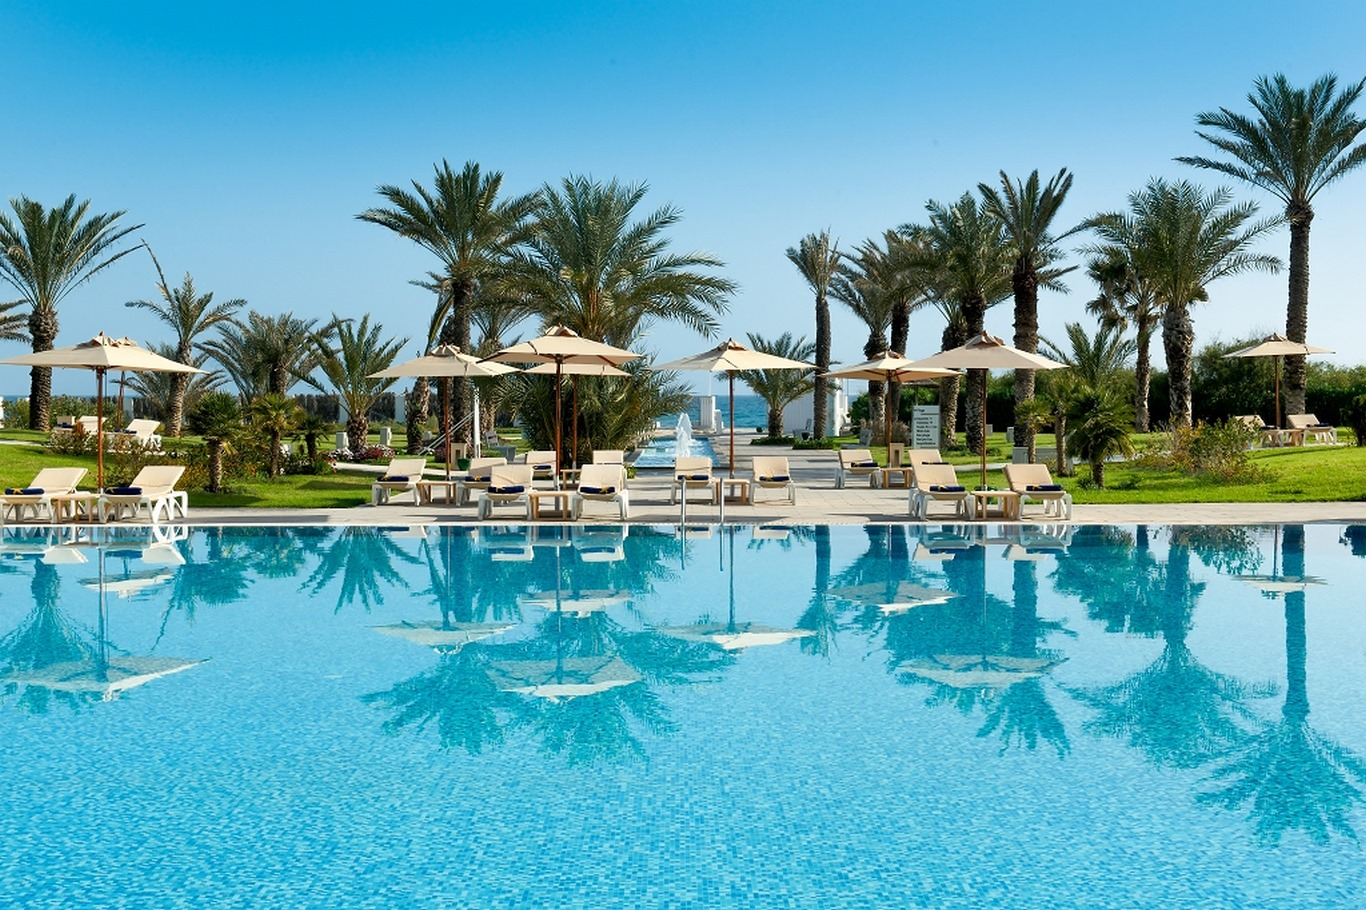 Photo n° 1 IBEROSTAR ROYAL MANSOUR 5* - Demi Pension 2014